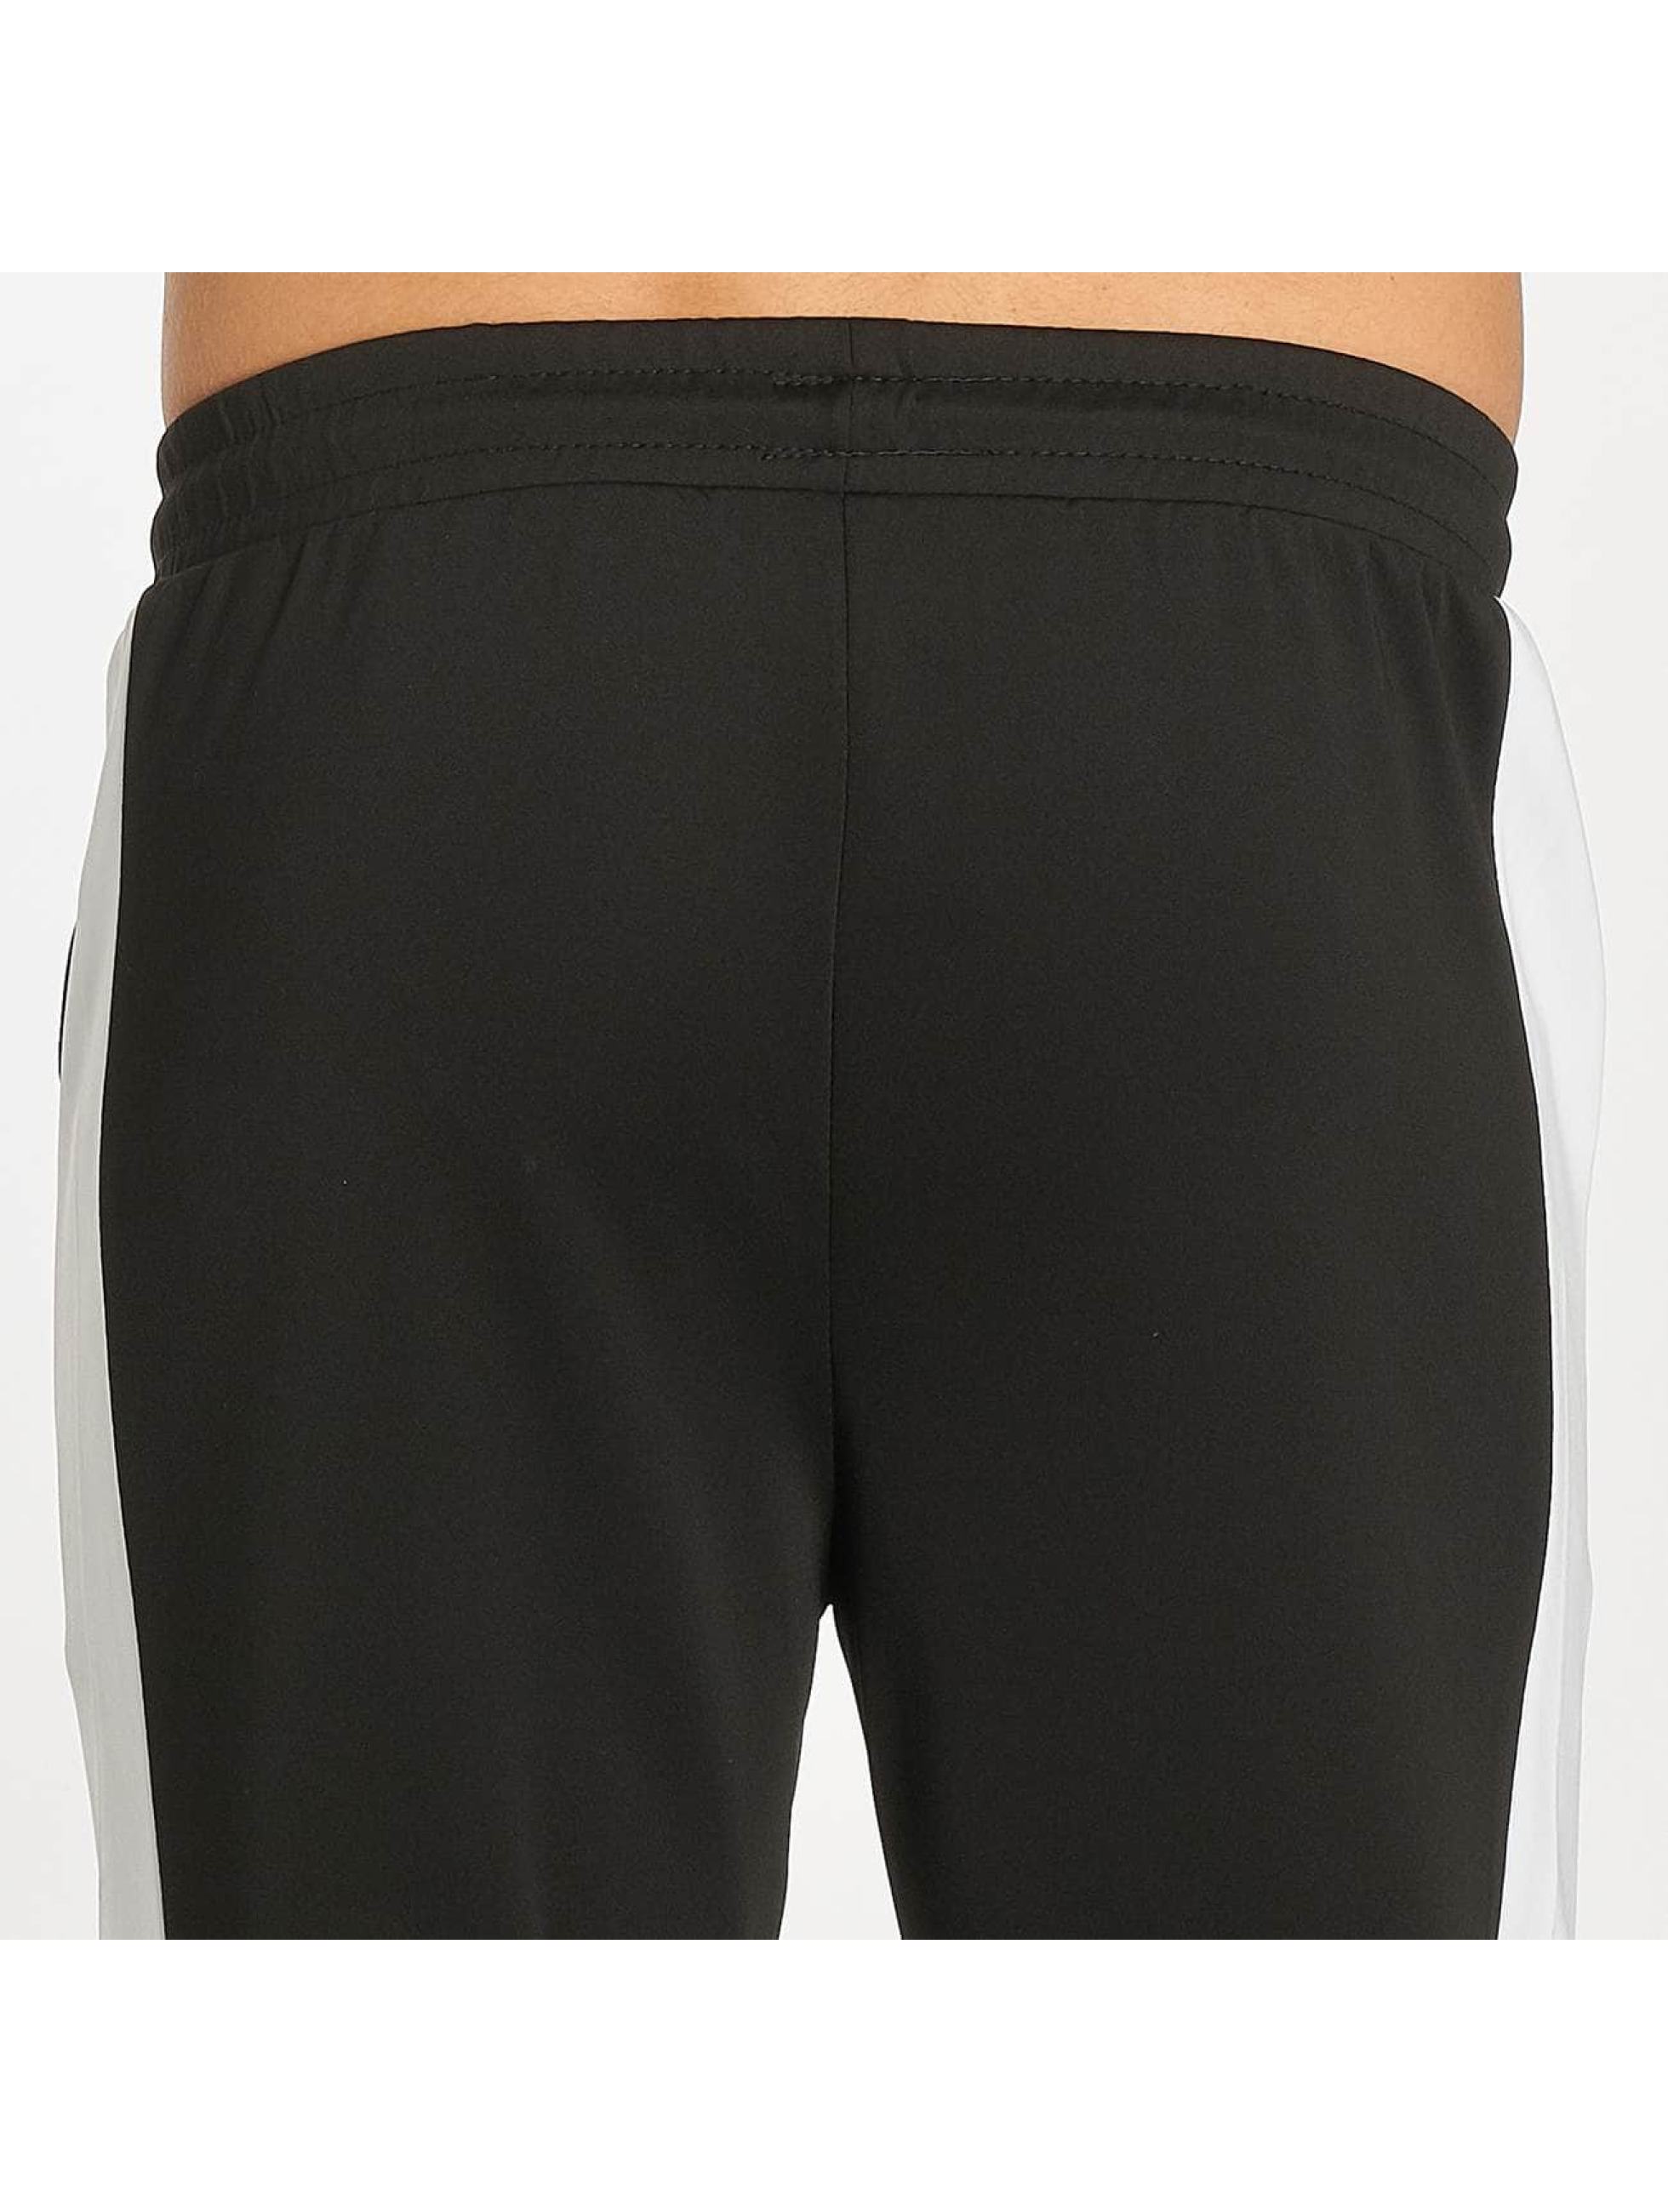 Zayne Paris Chándal Two-Tone negro